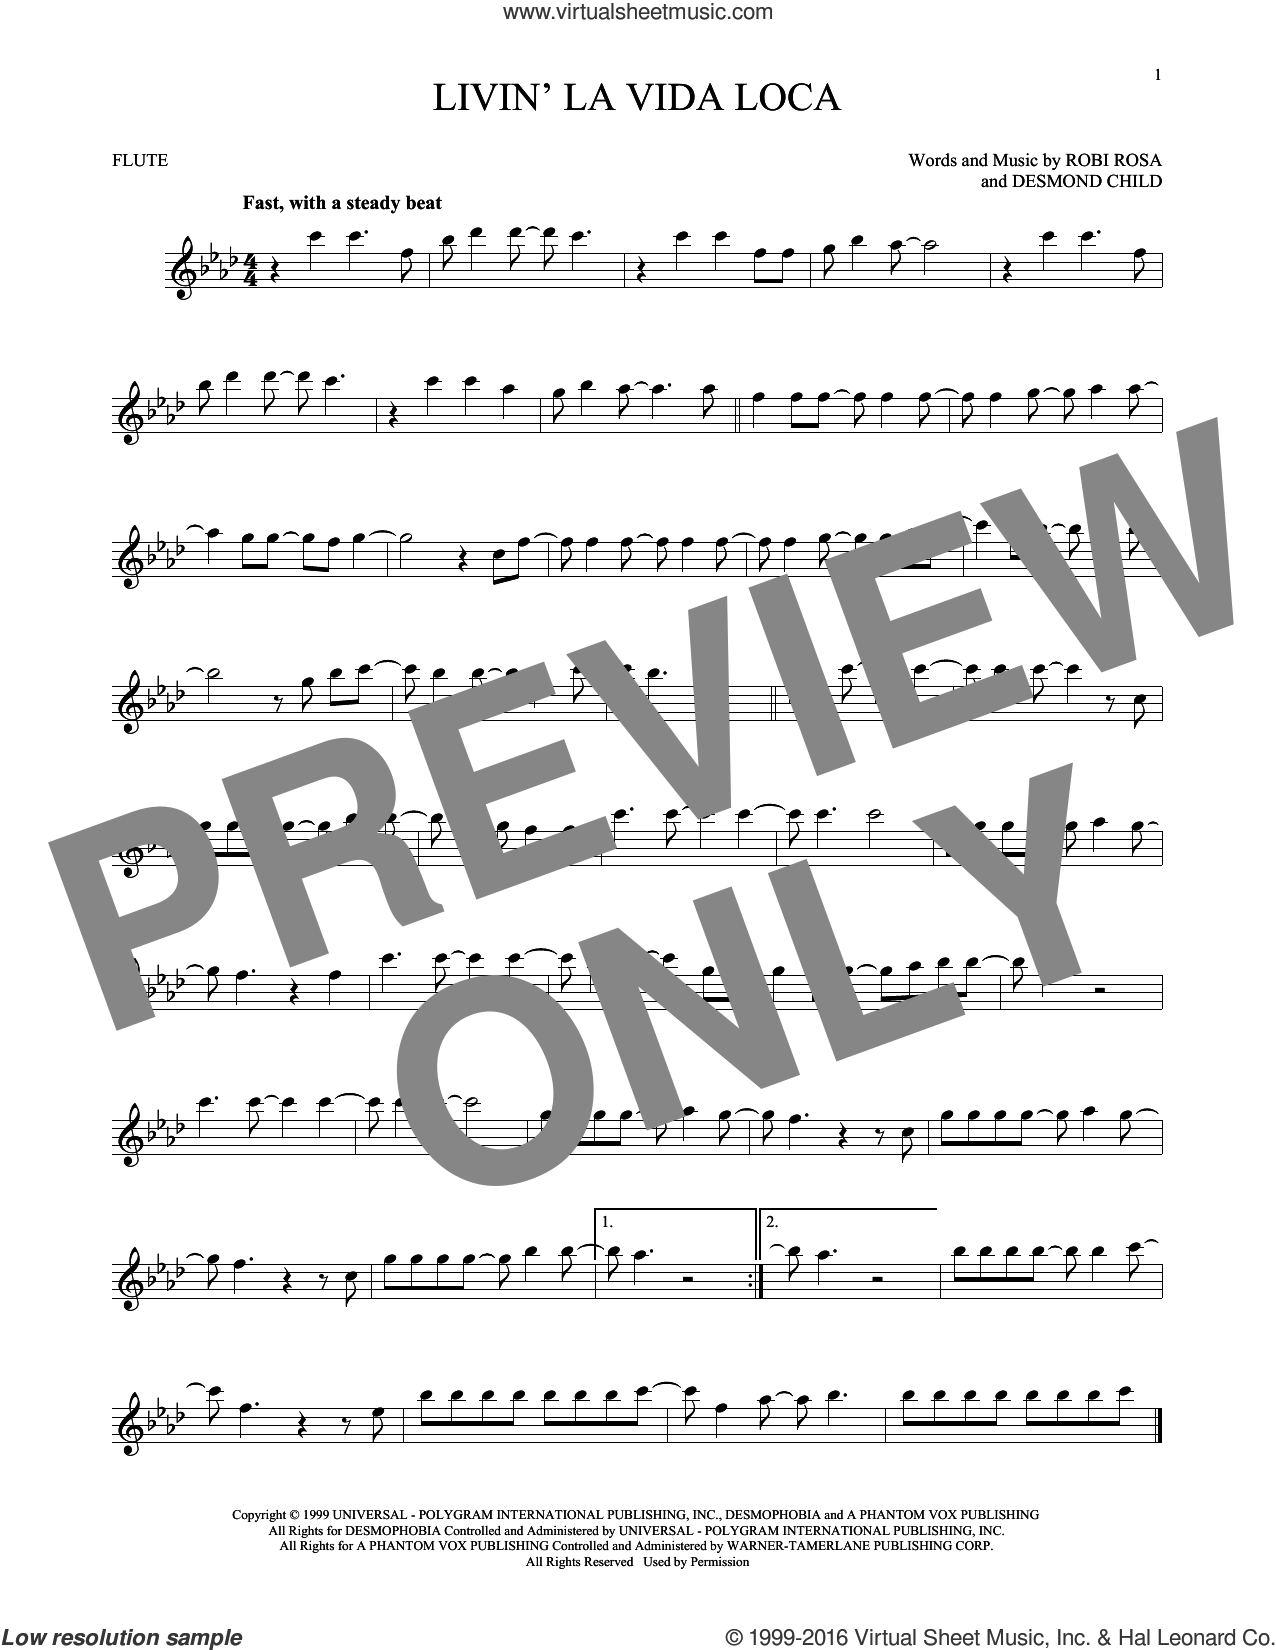 Livin' La Vida Loca sheet music for flute solo by Ricky Martin, Desmond Child and Robi Rosa, intermediate skill level